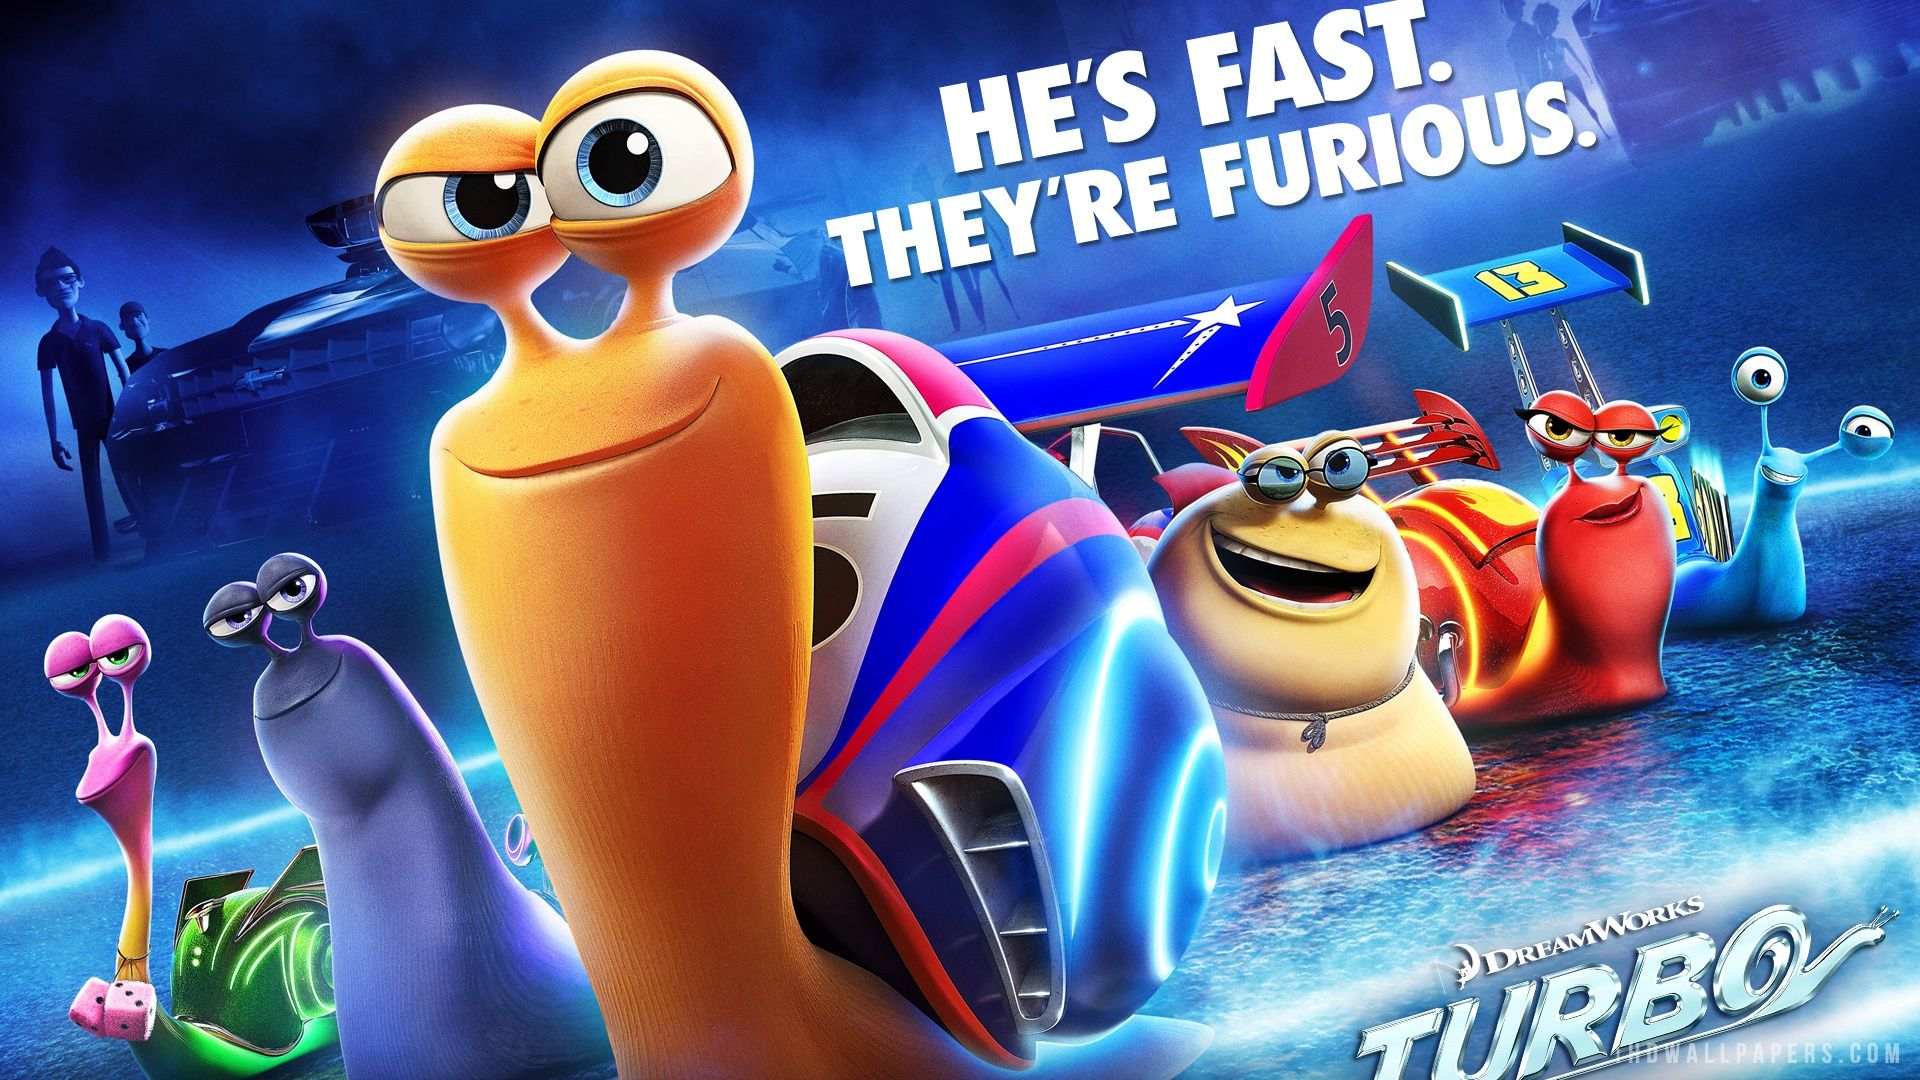 movie 2013 turbo wallpaper hd free download | movies/tv shows